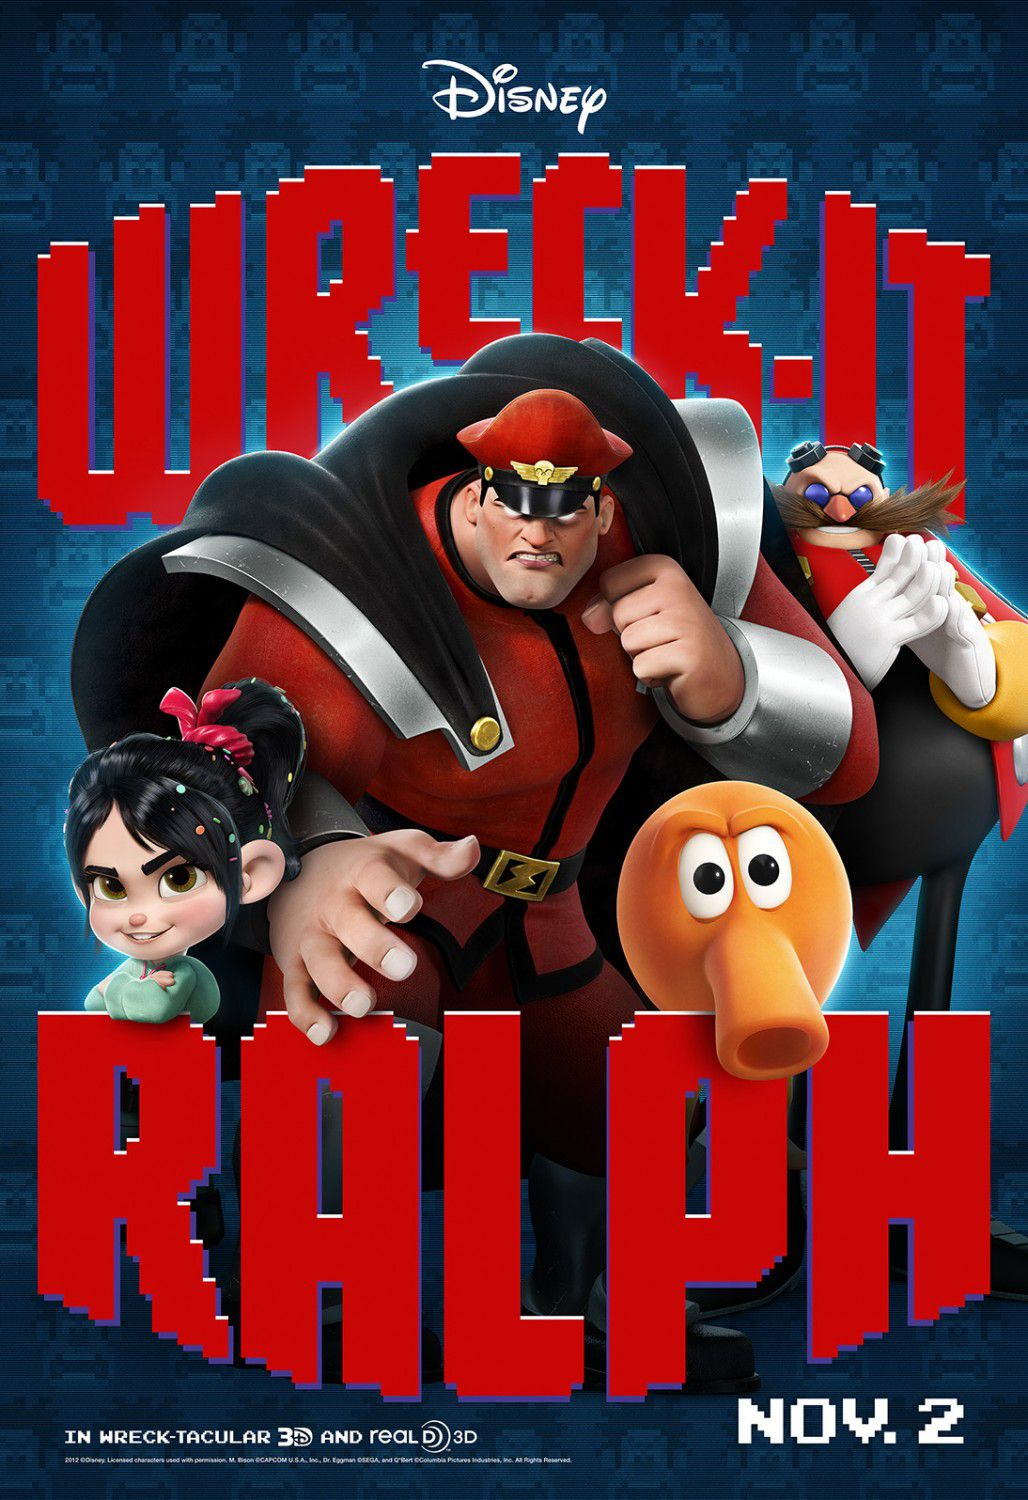 Ralph Spaccatutto - Wreck it Ralph (2012)